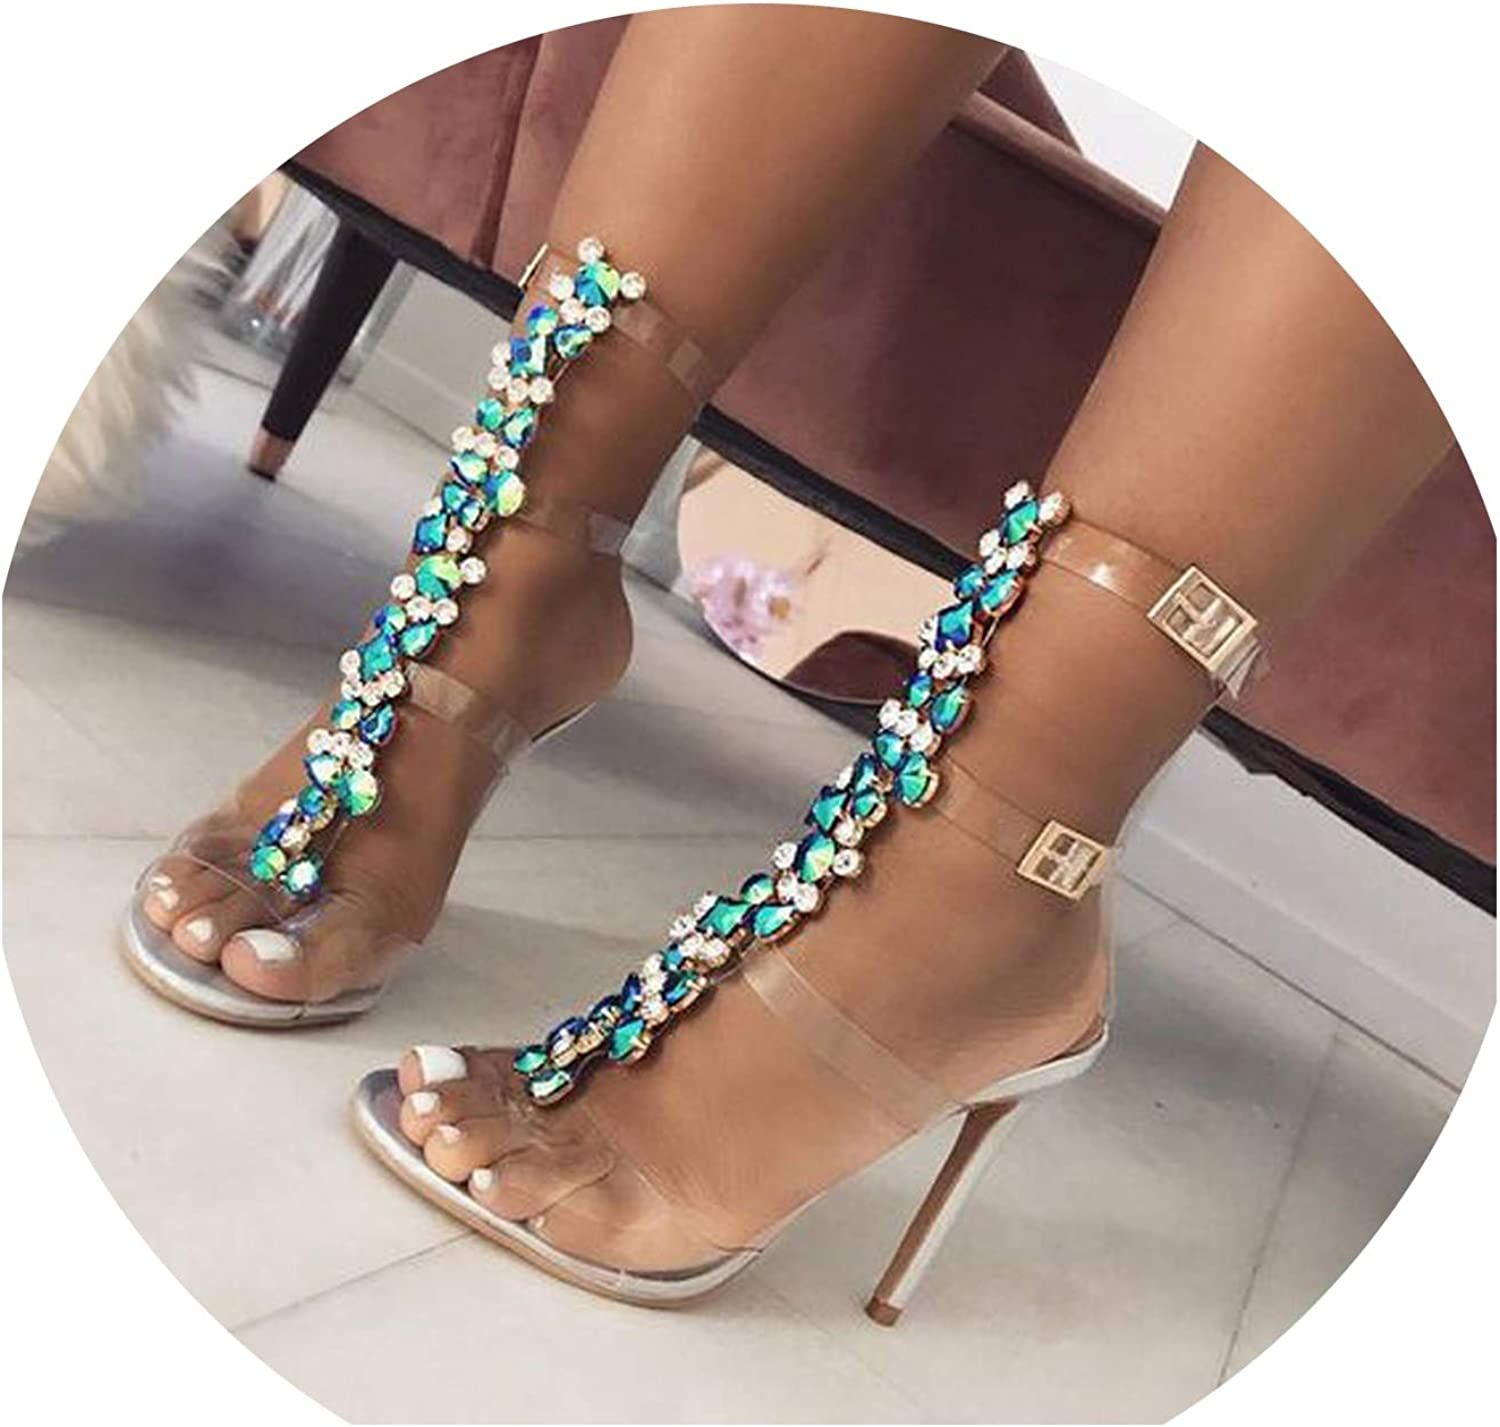 Women High Heels shoes Open Toe Buckle Strap Crystal Clear PVC Casual High Heels Sandals Summer Sandals